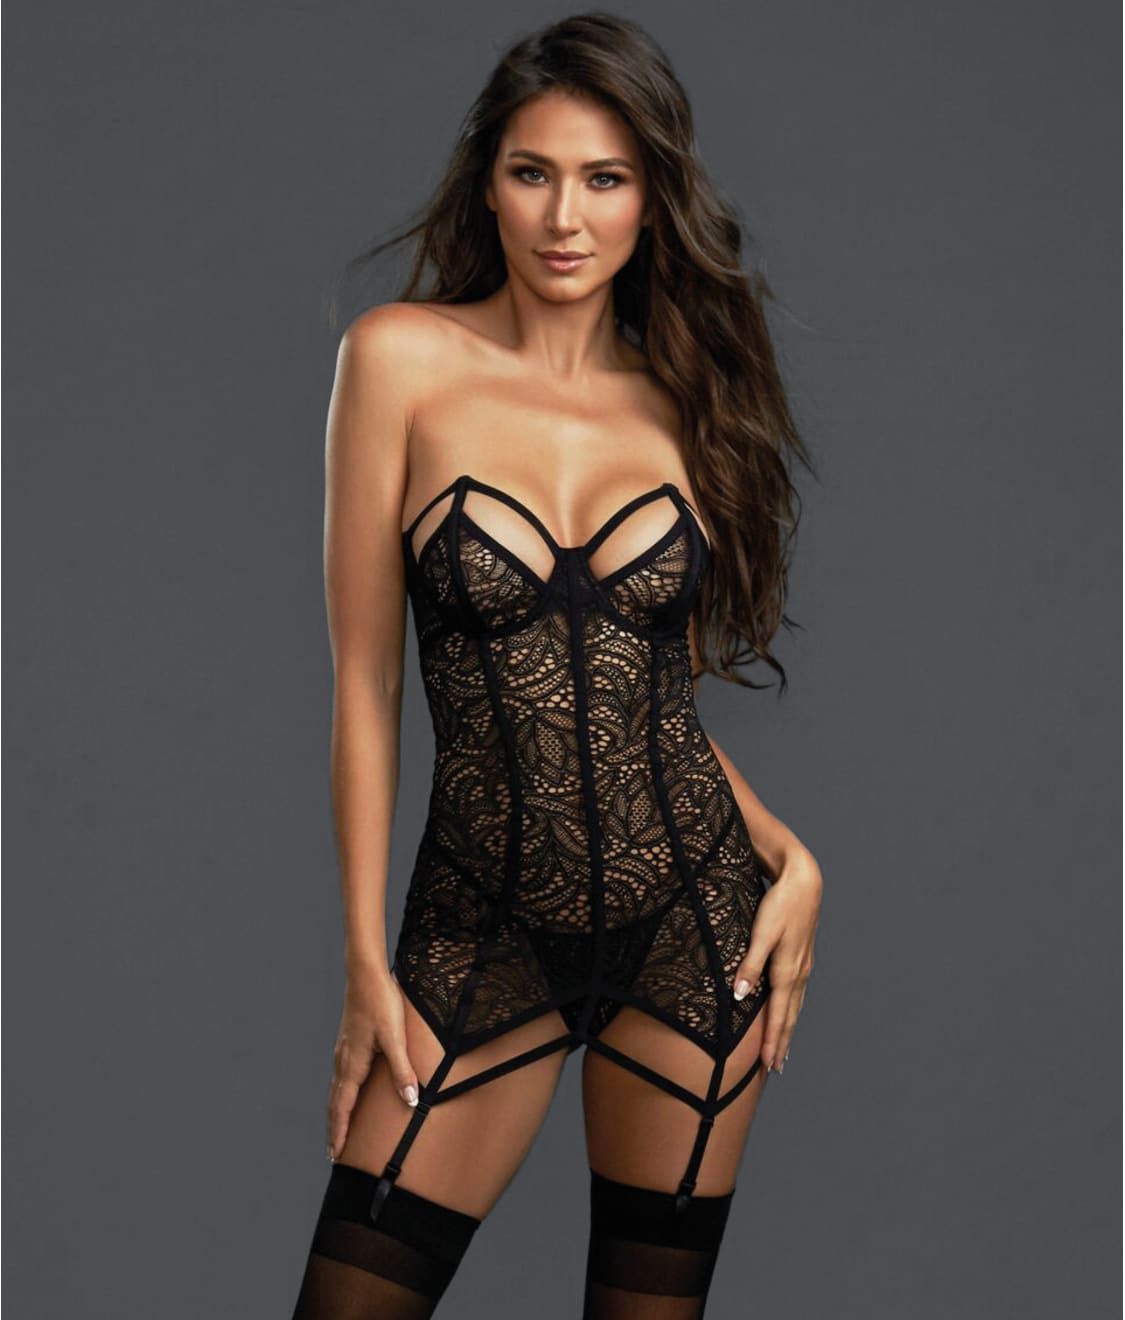 Detachable Garter Straps and Matching Brief Set OBSESSIVE 859 Luxury Corset